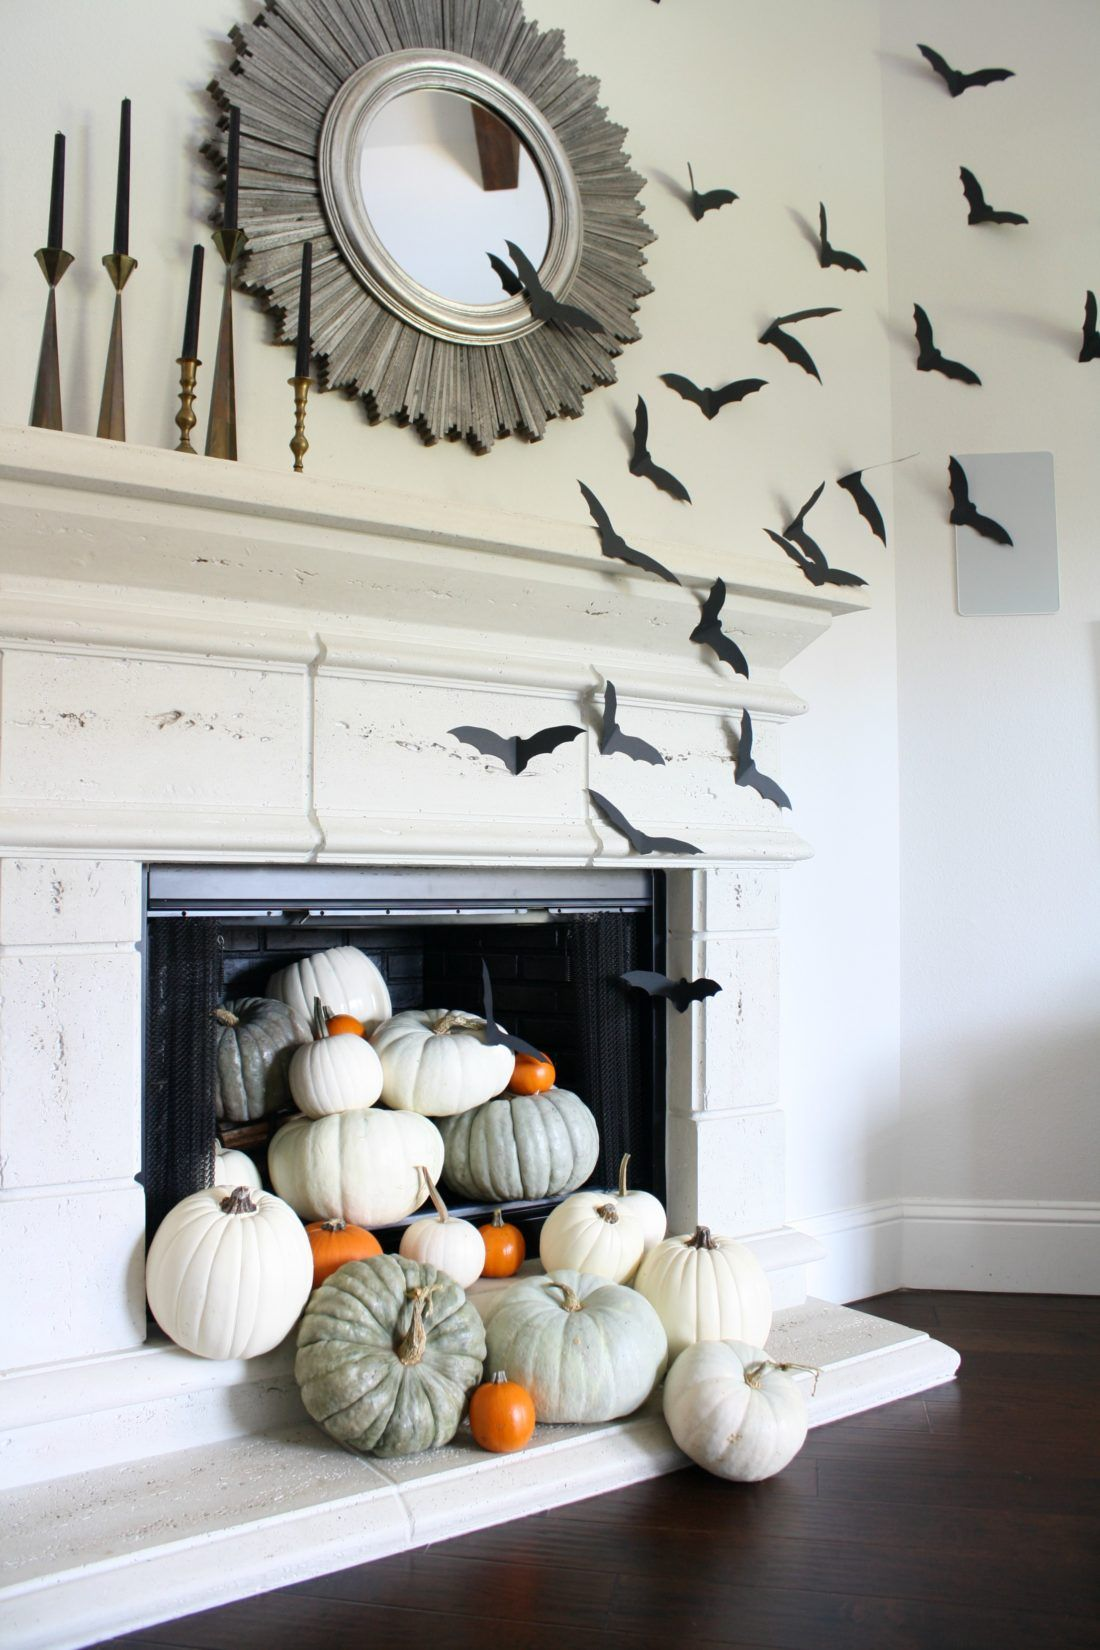 simple halloween decorations, paper bats, bat halloween decor - Inexpensive Halloween Decorations